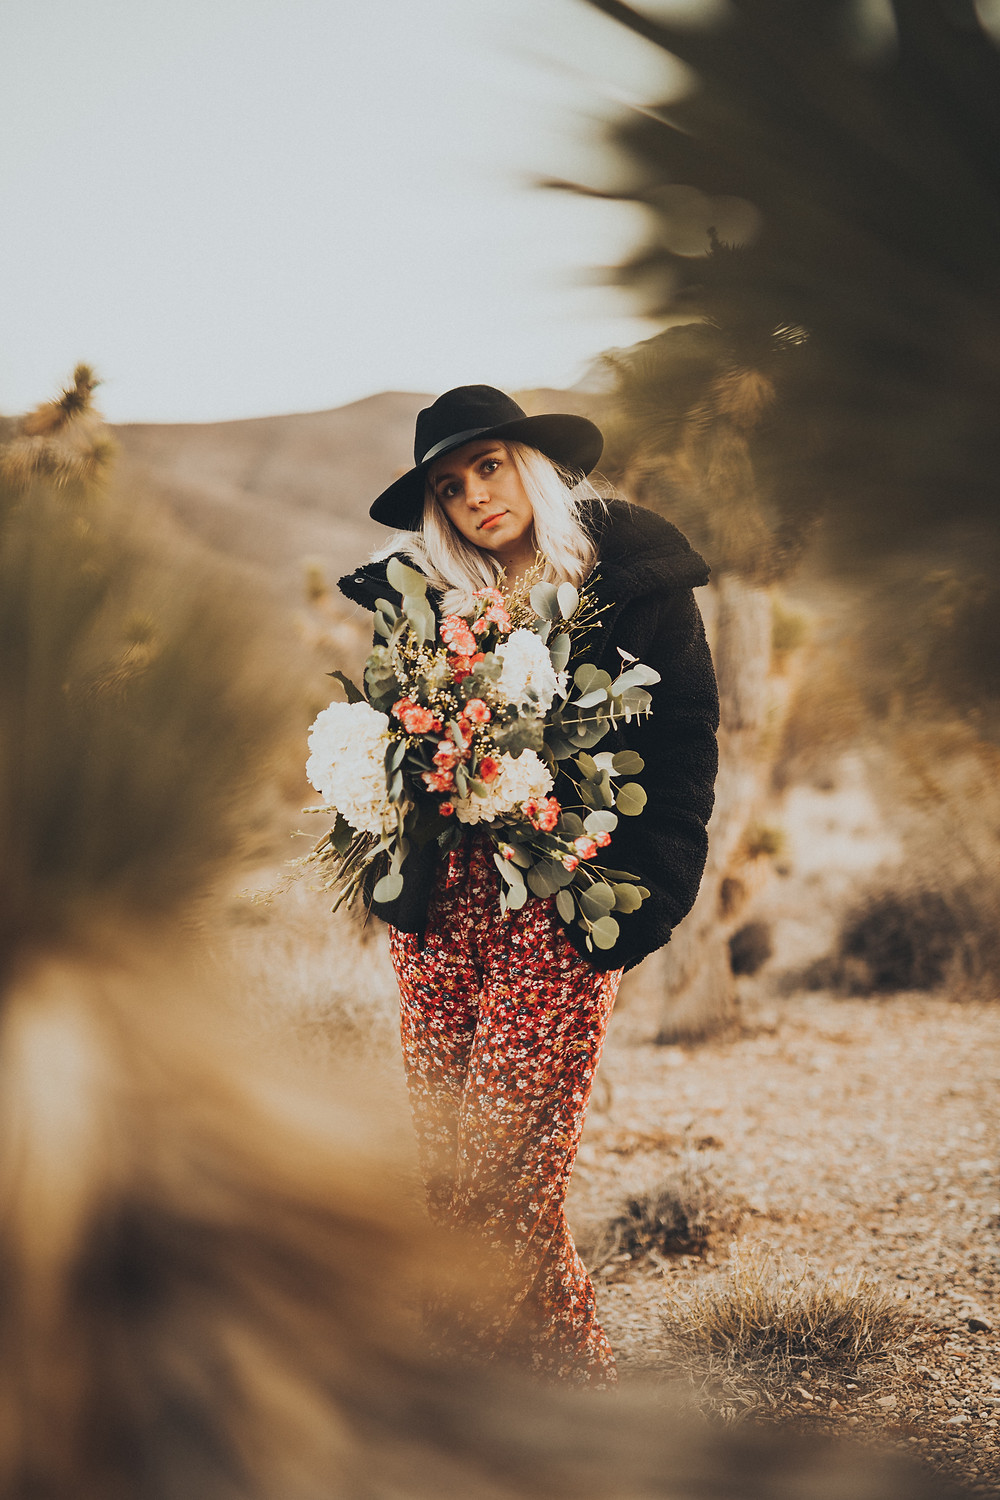 Woman holding a bouquet of flowers and wearing a brimmed hat poses in the desert Man gives woman a piggyback ride in the desert surrounded by joshua trees. The golden desert with snowy mountains captured by las vegas engagement photographer hayway films.